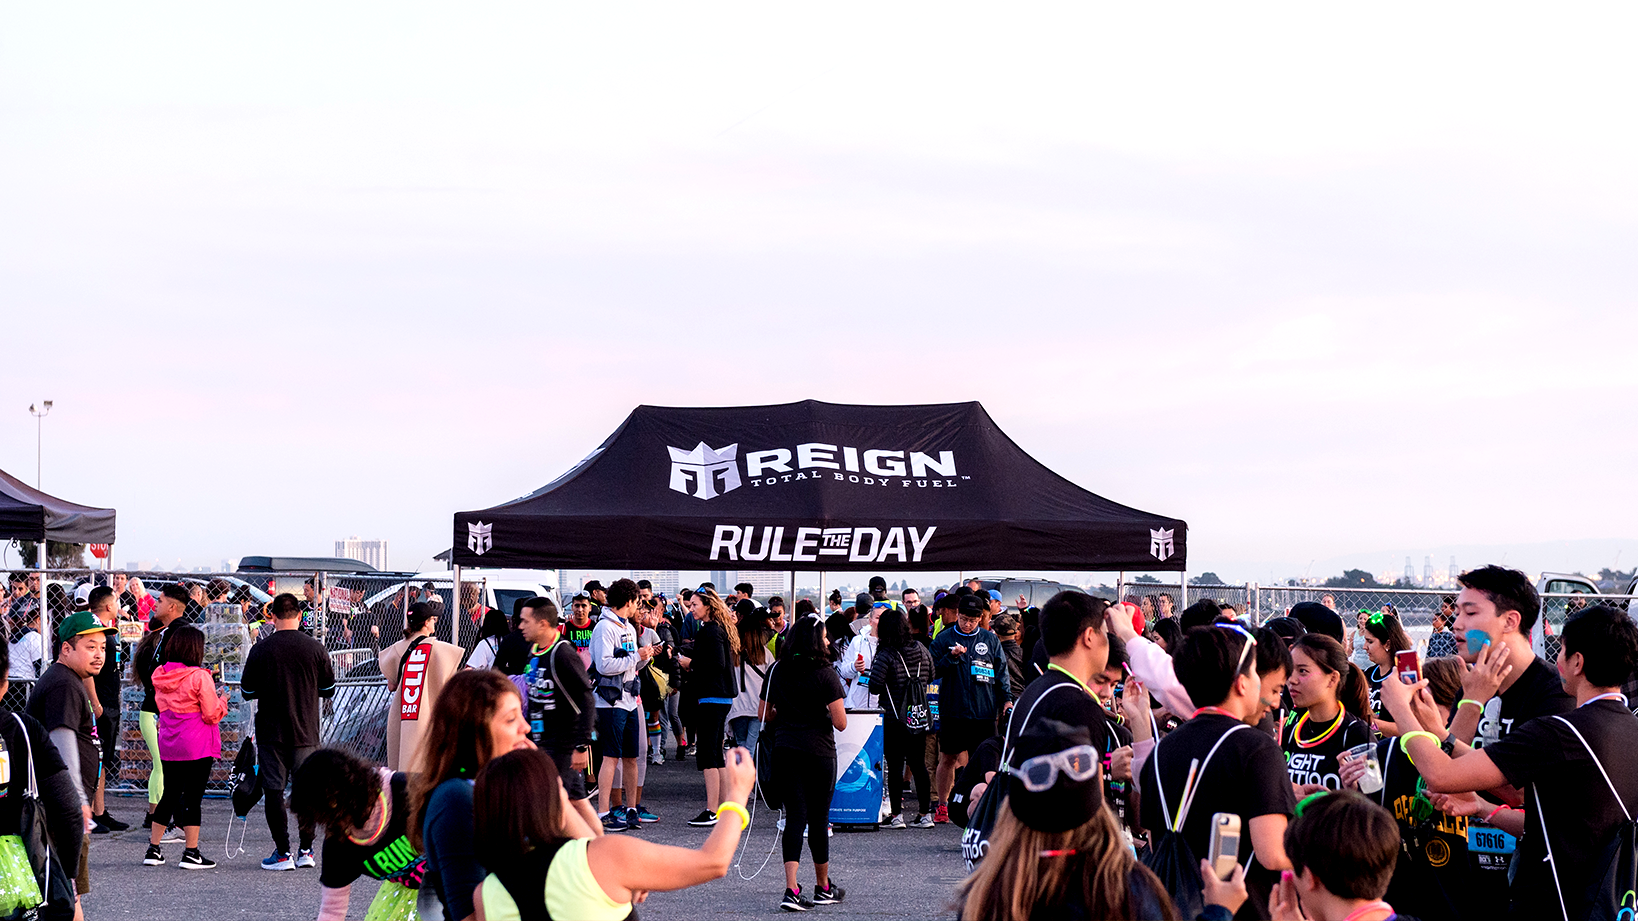 Reign, Rule the Day tent